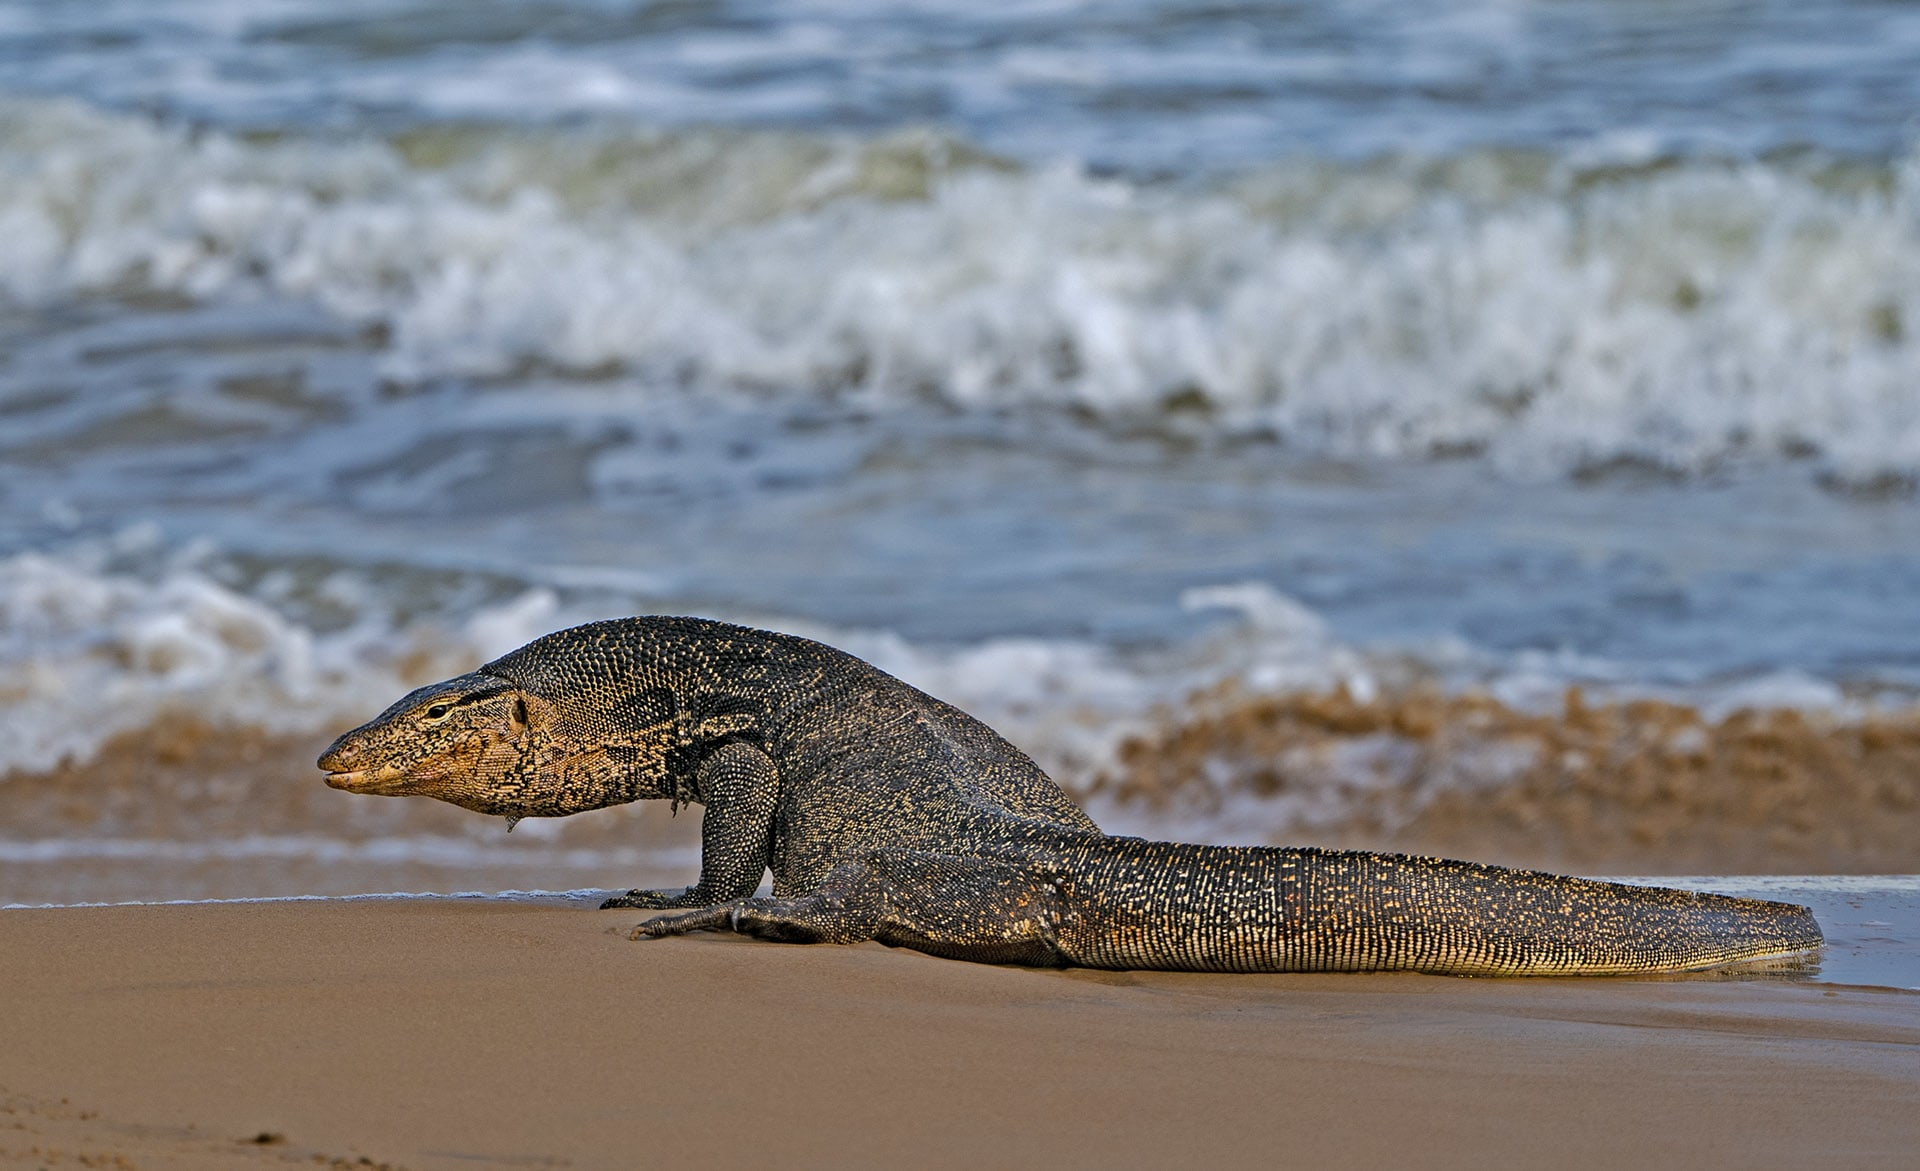 The water monitor lizard, found along the coastal areas of Bay of Bengal, can grow up to nine-feet.